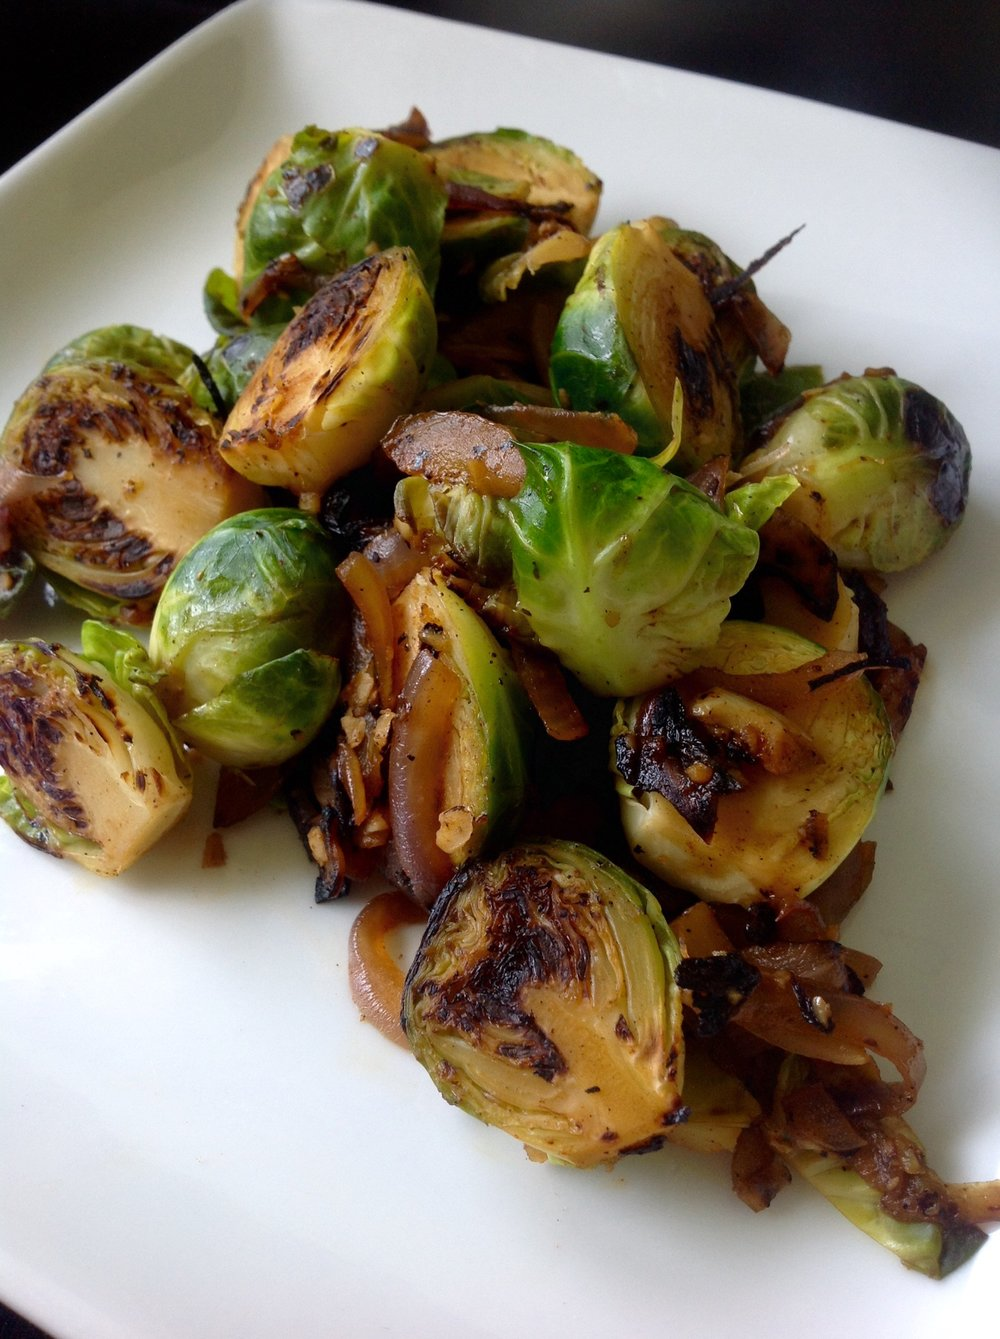 Caramelized Smoky Brussels Sprouts - Healthy, Plant-Based, Oil-Free, Gluten-Free, Vegan Recipe